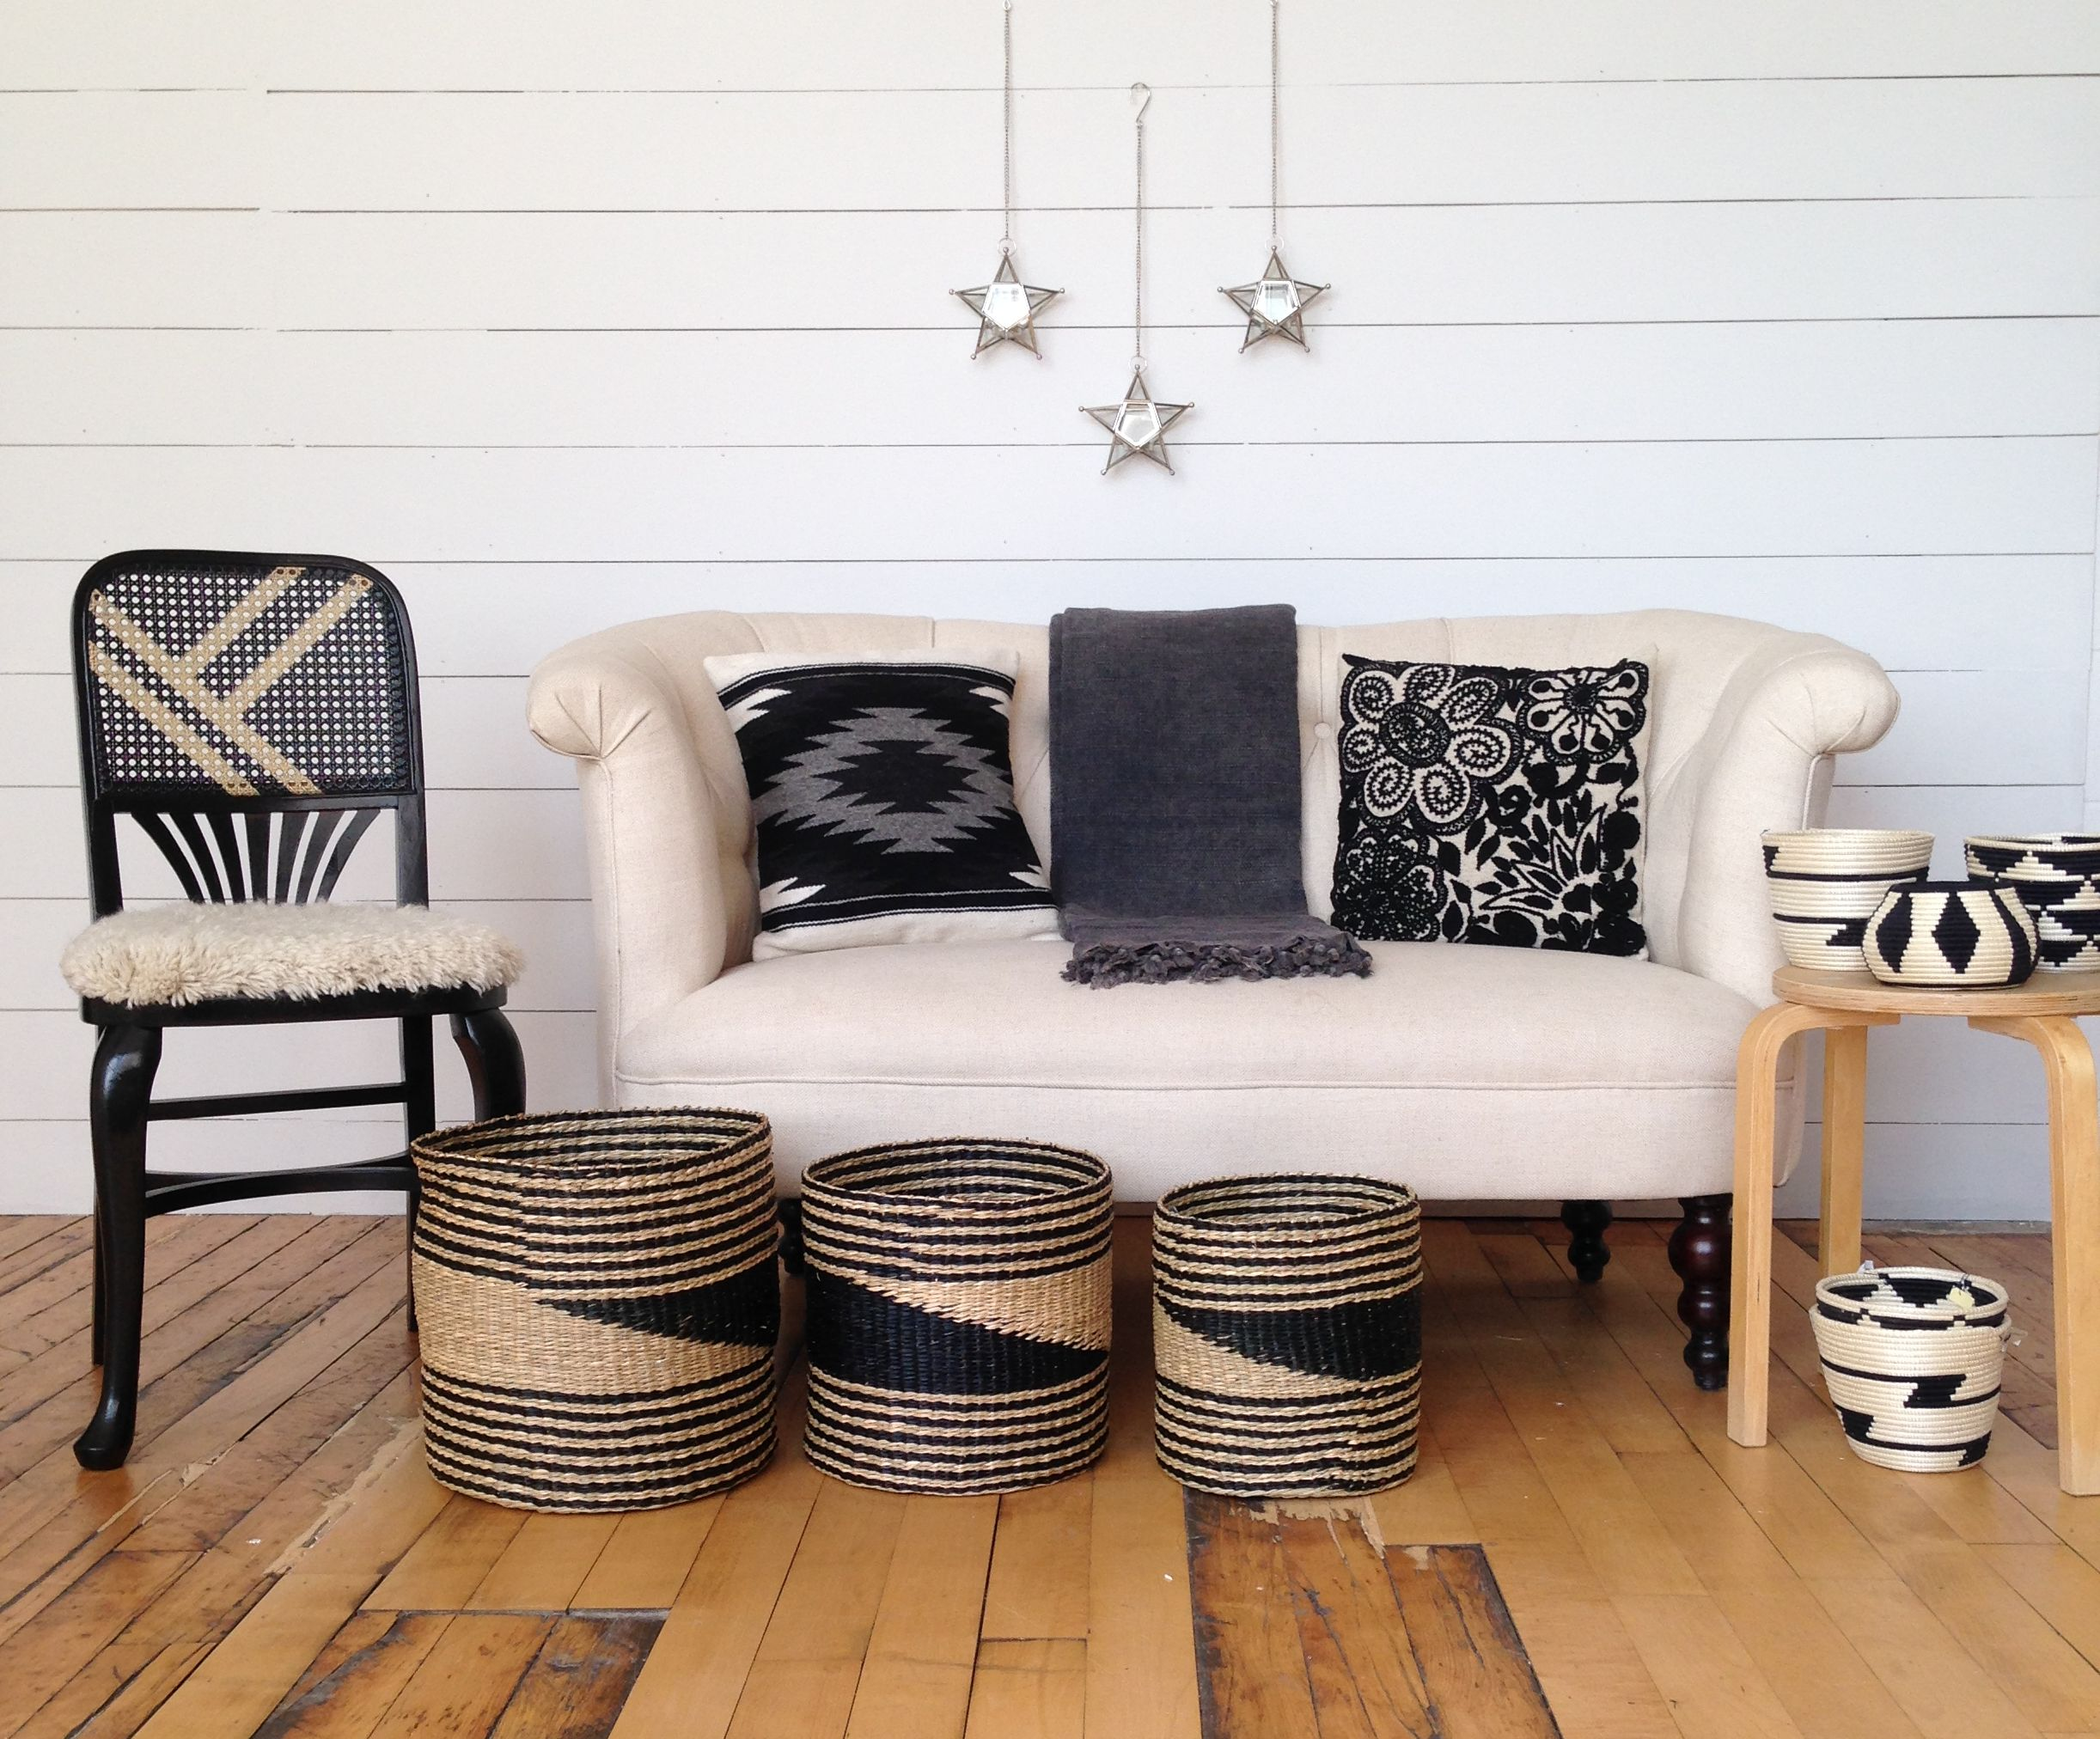 Good Artisan Made Home Goods Throws, Rugs, Pillows, Baskets